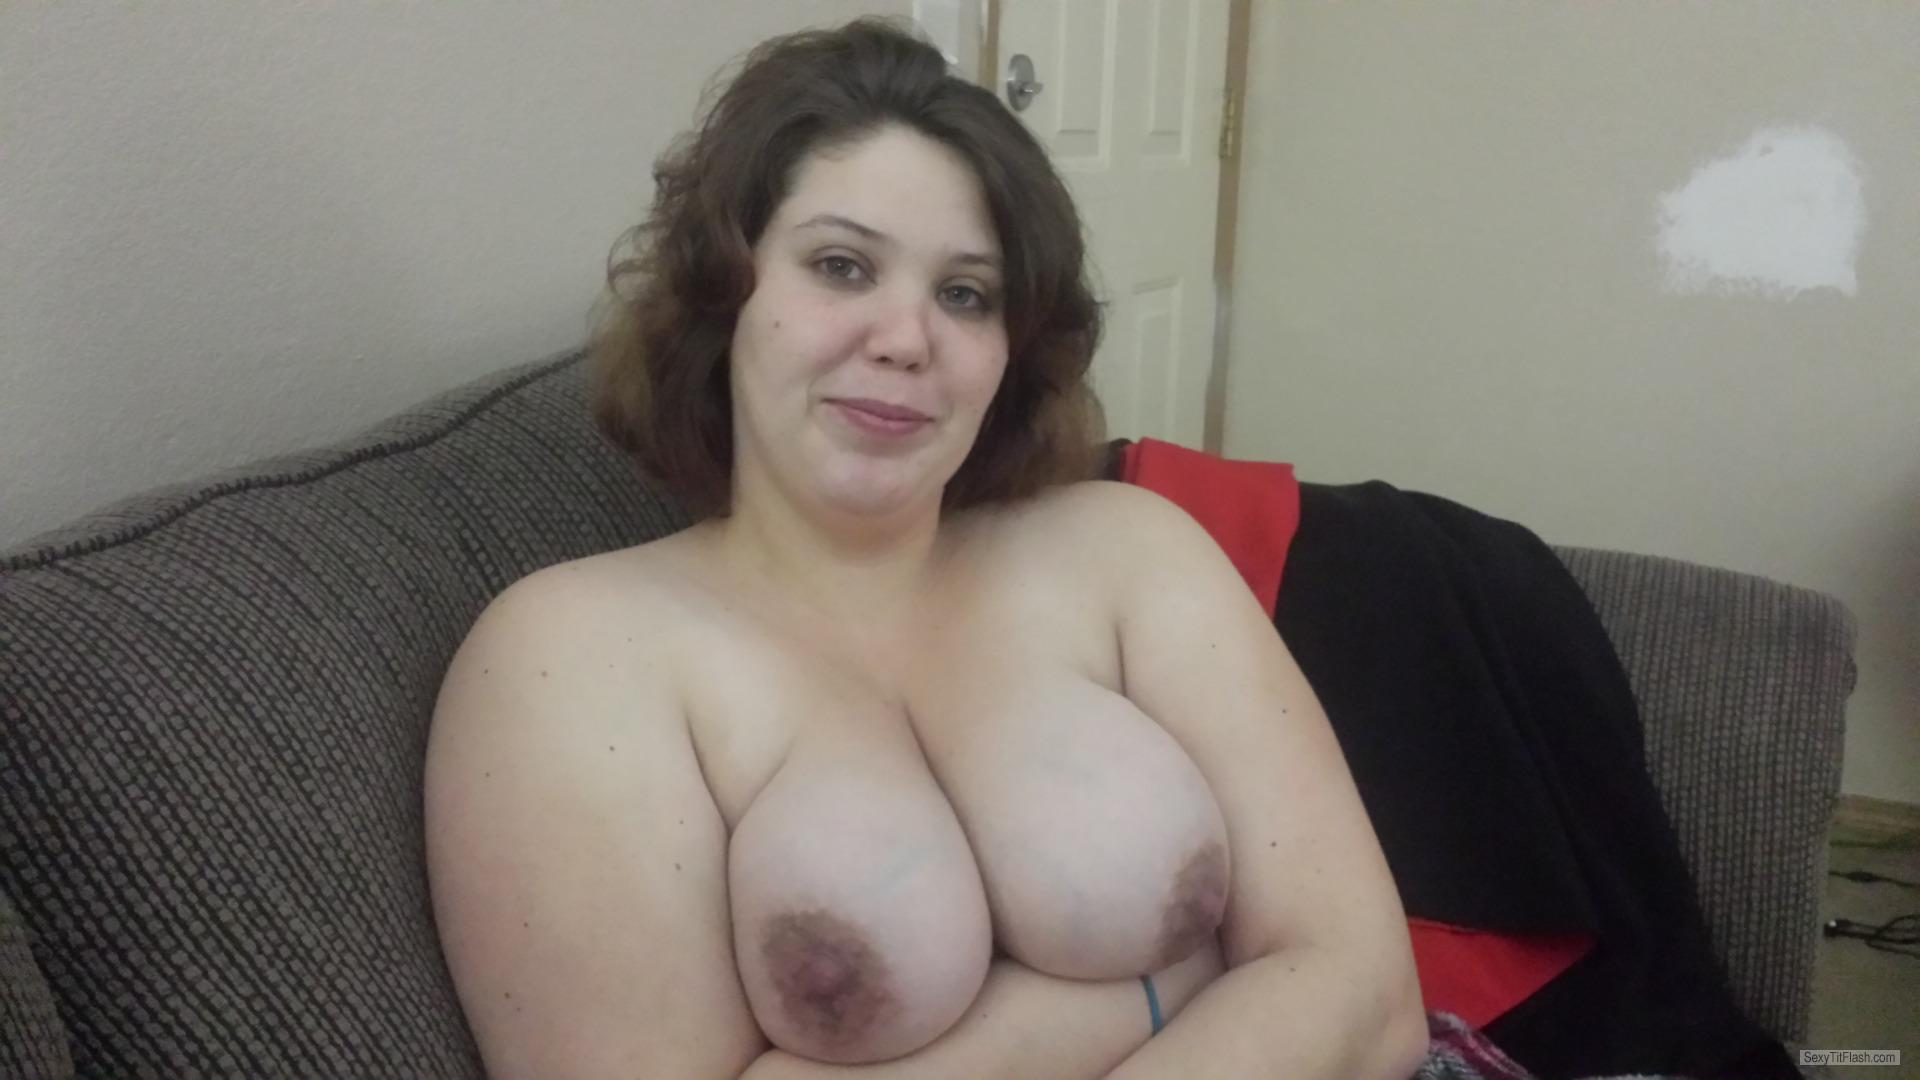 Tit Flash: Wife's Big Tits - Topless Jenny from United States